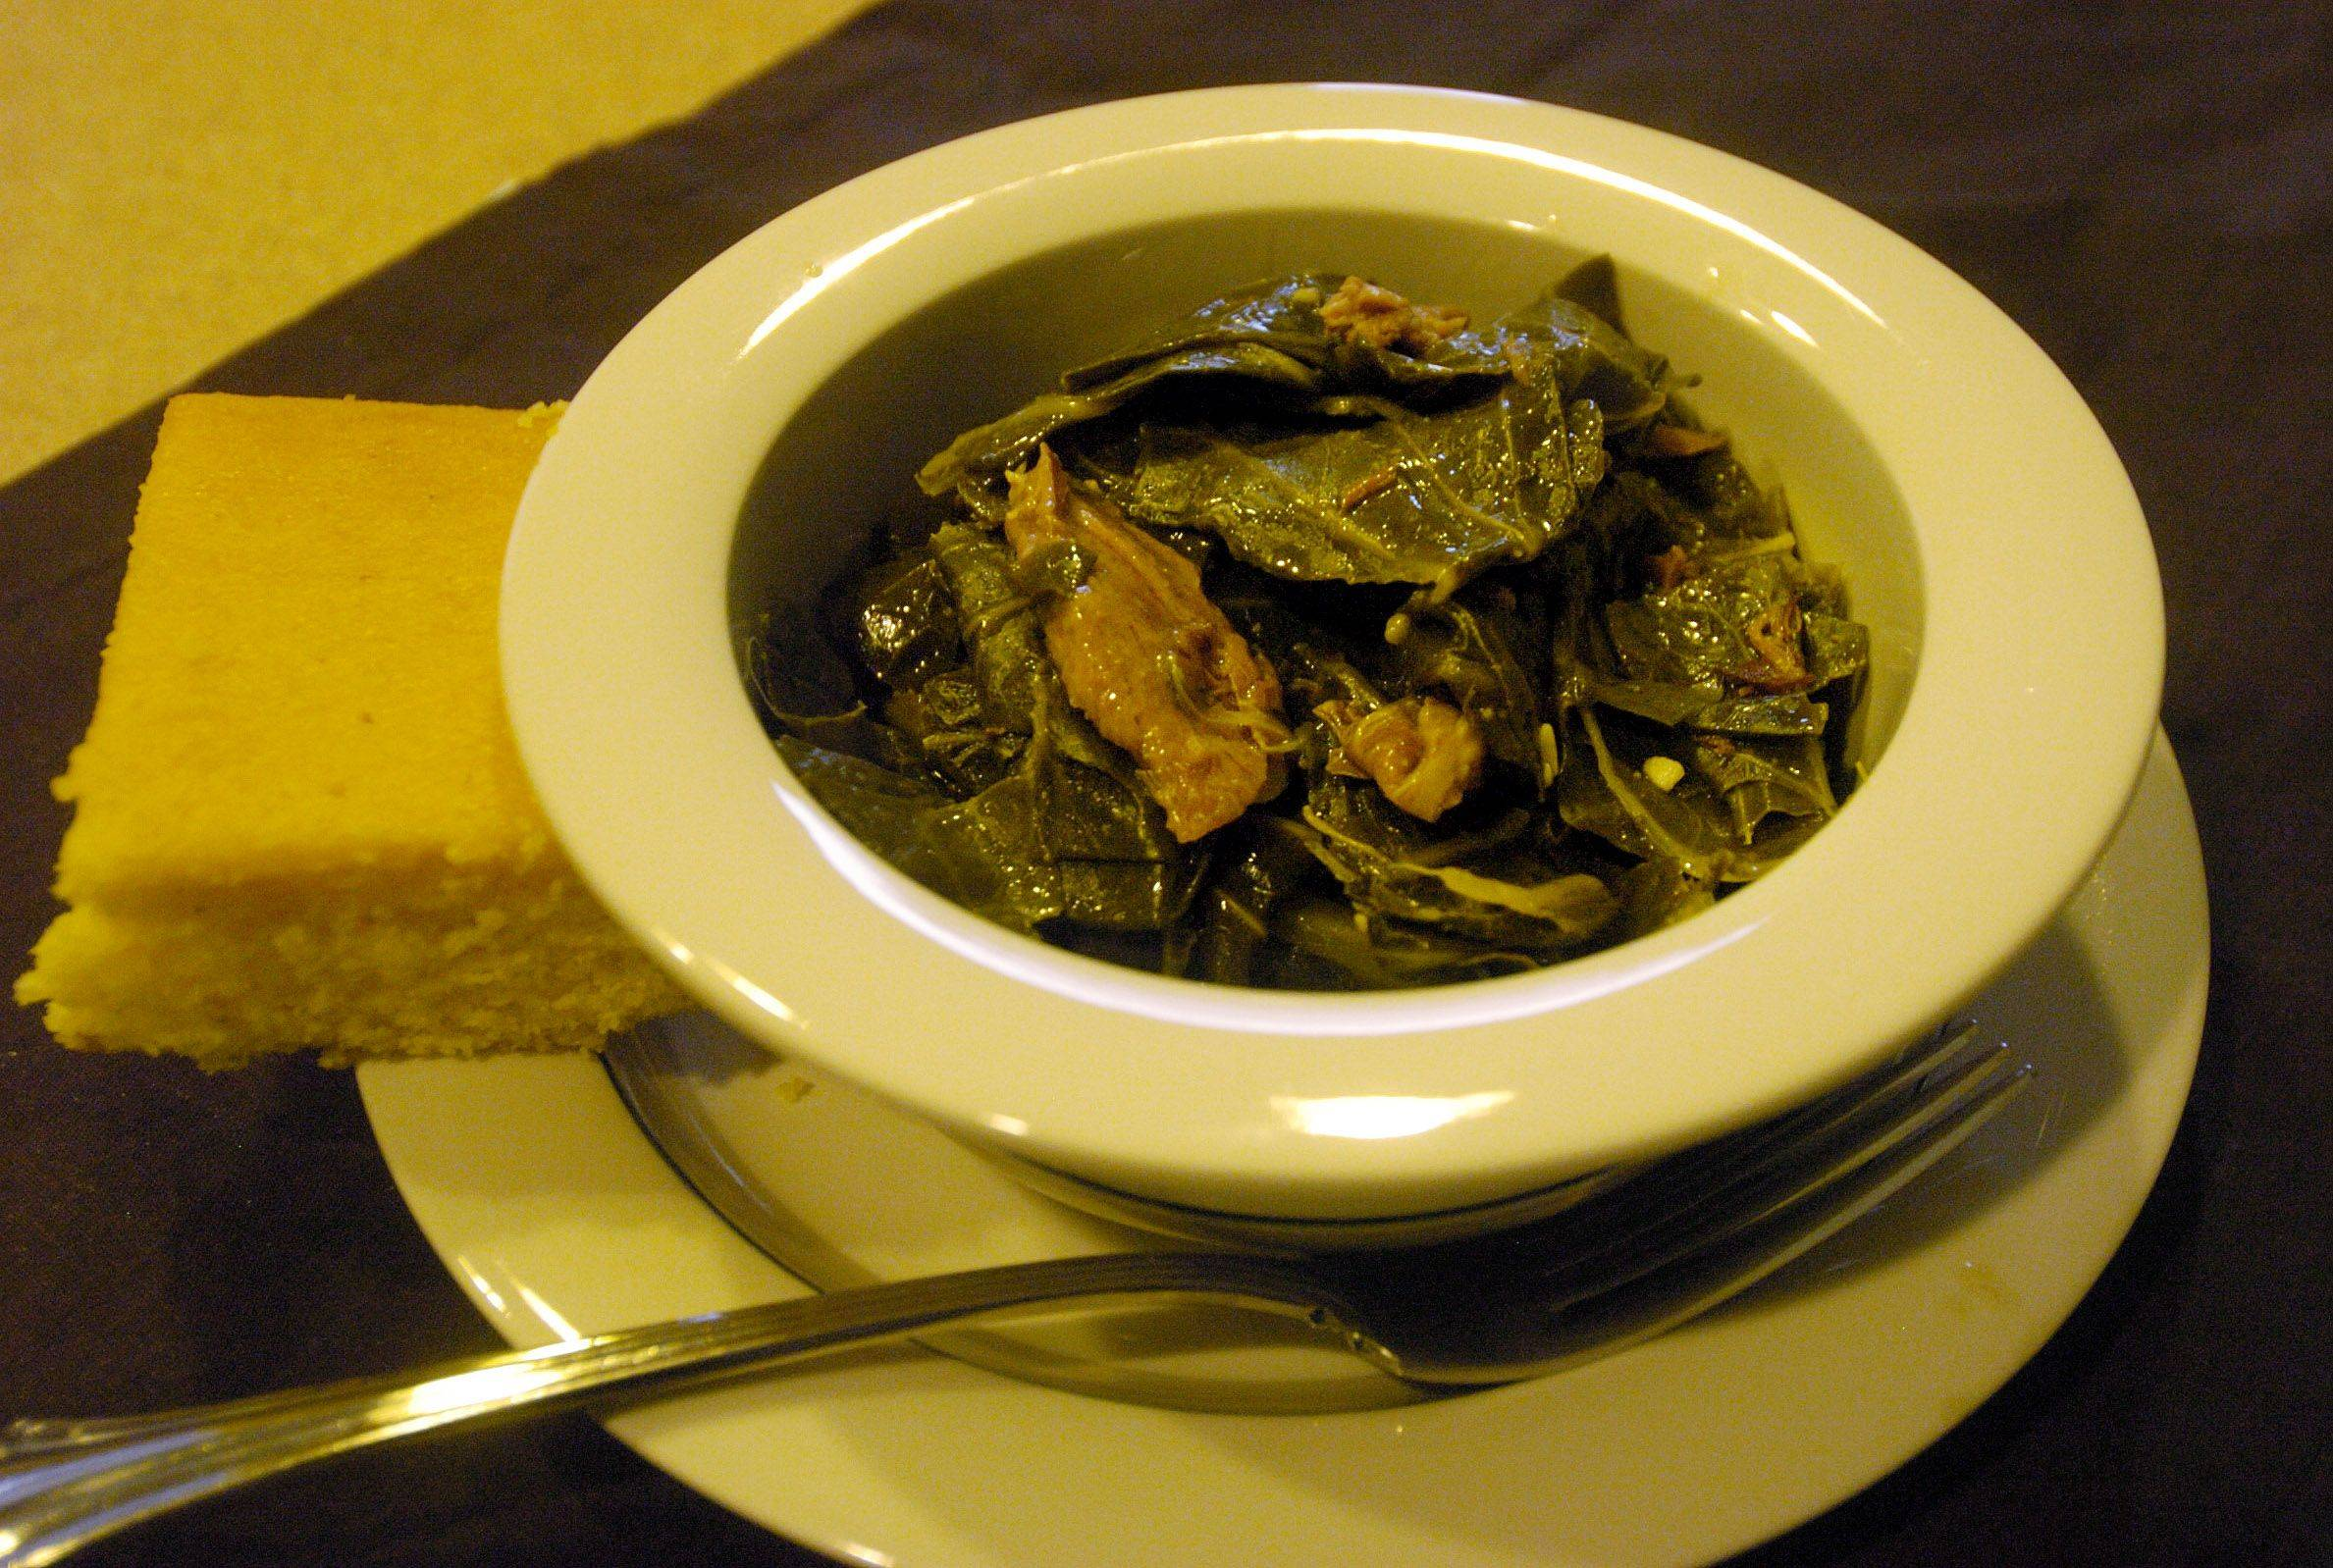 A smoked turkey leg stands in for a ham bone in this healthier take on braised collard greens.